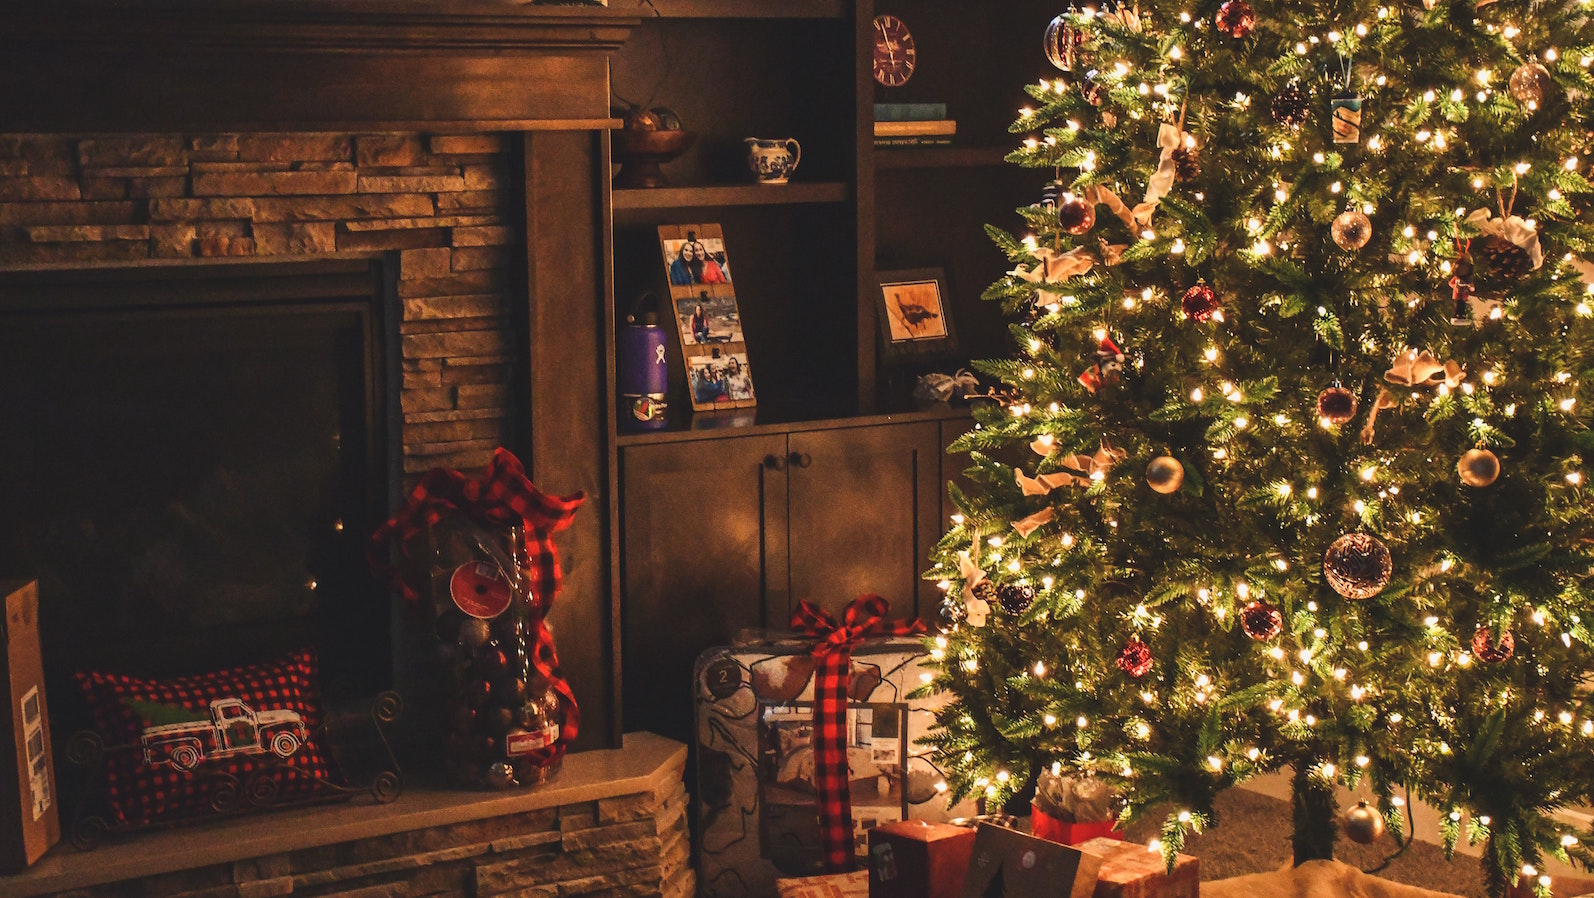 How much will your family spend this Christmas?